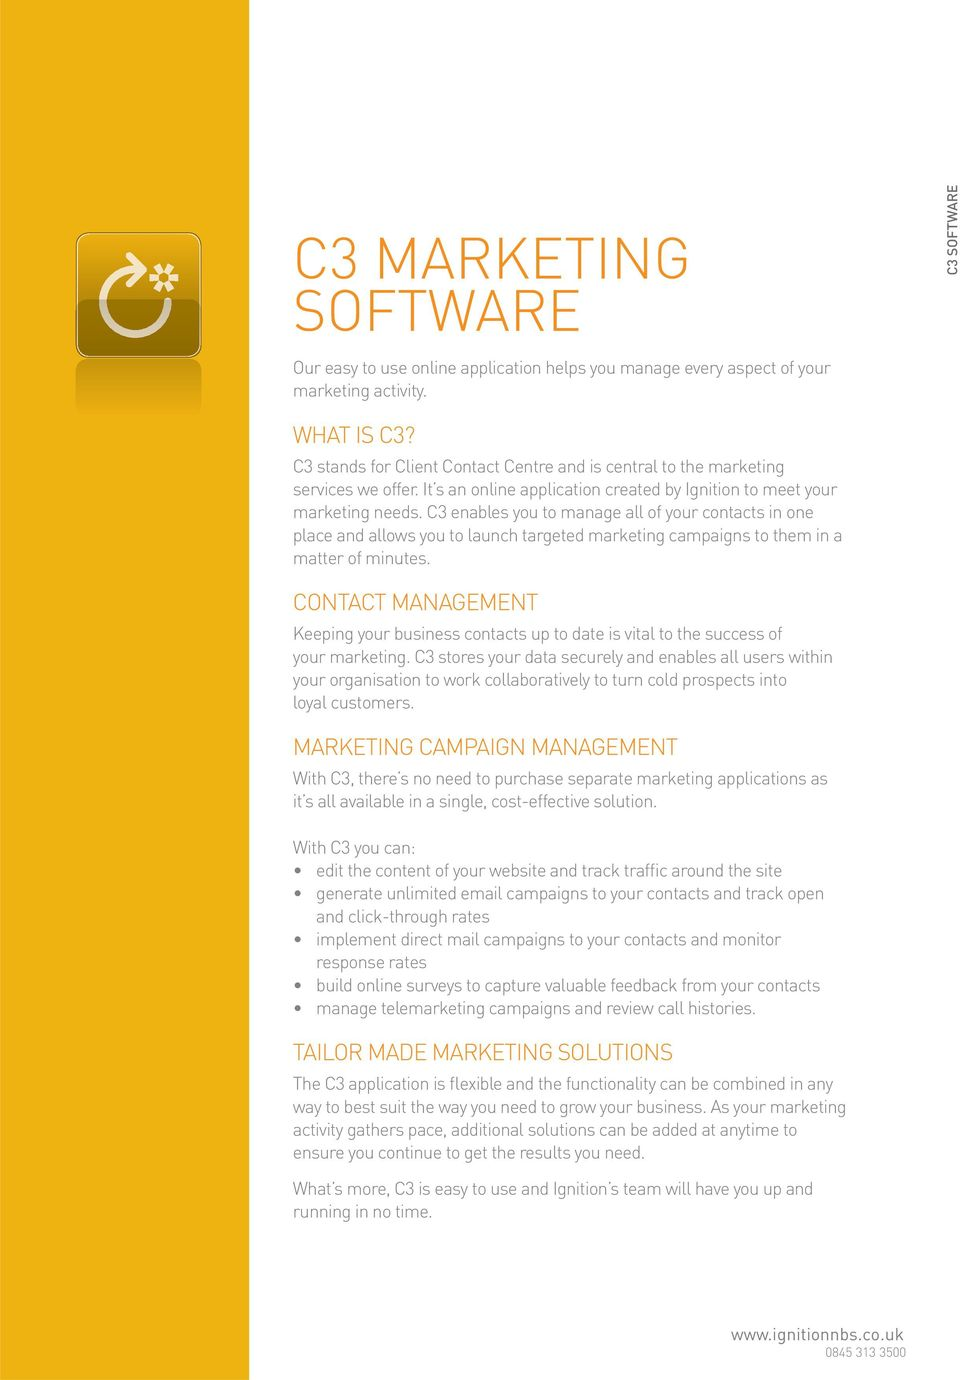 C3 enables you to manage all of your contacts in one place and allows you to launch targeted marketing campaigns to them in a matter of minutes.